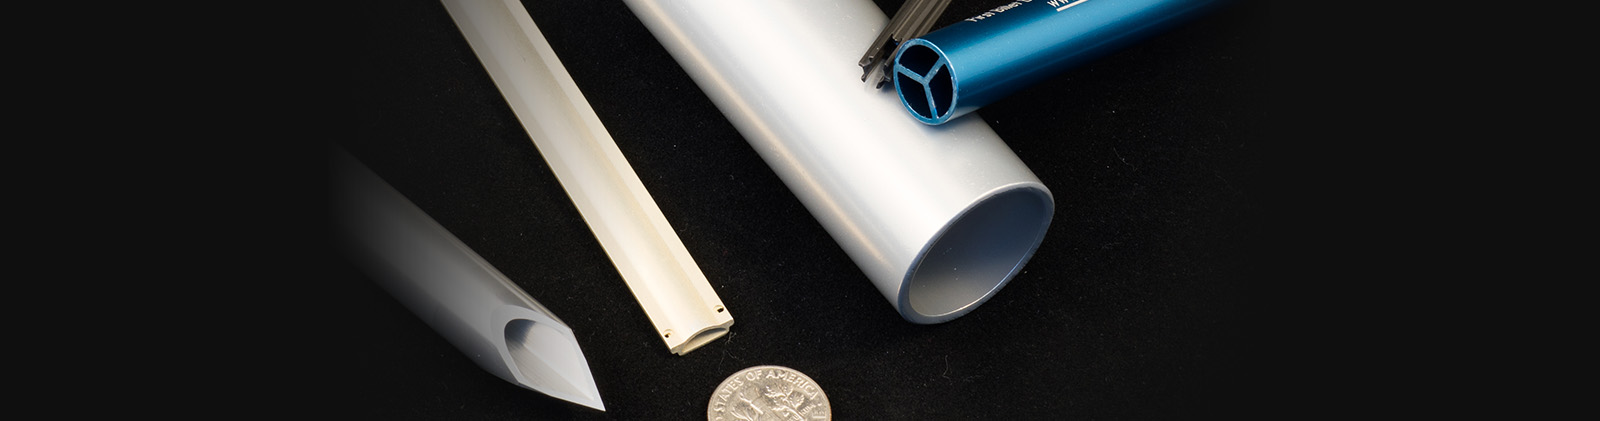 Profile Precision Extrusions - Medical Devices